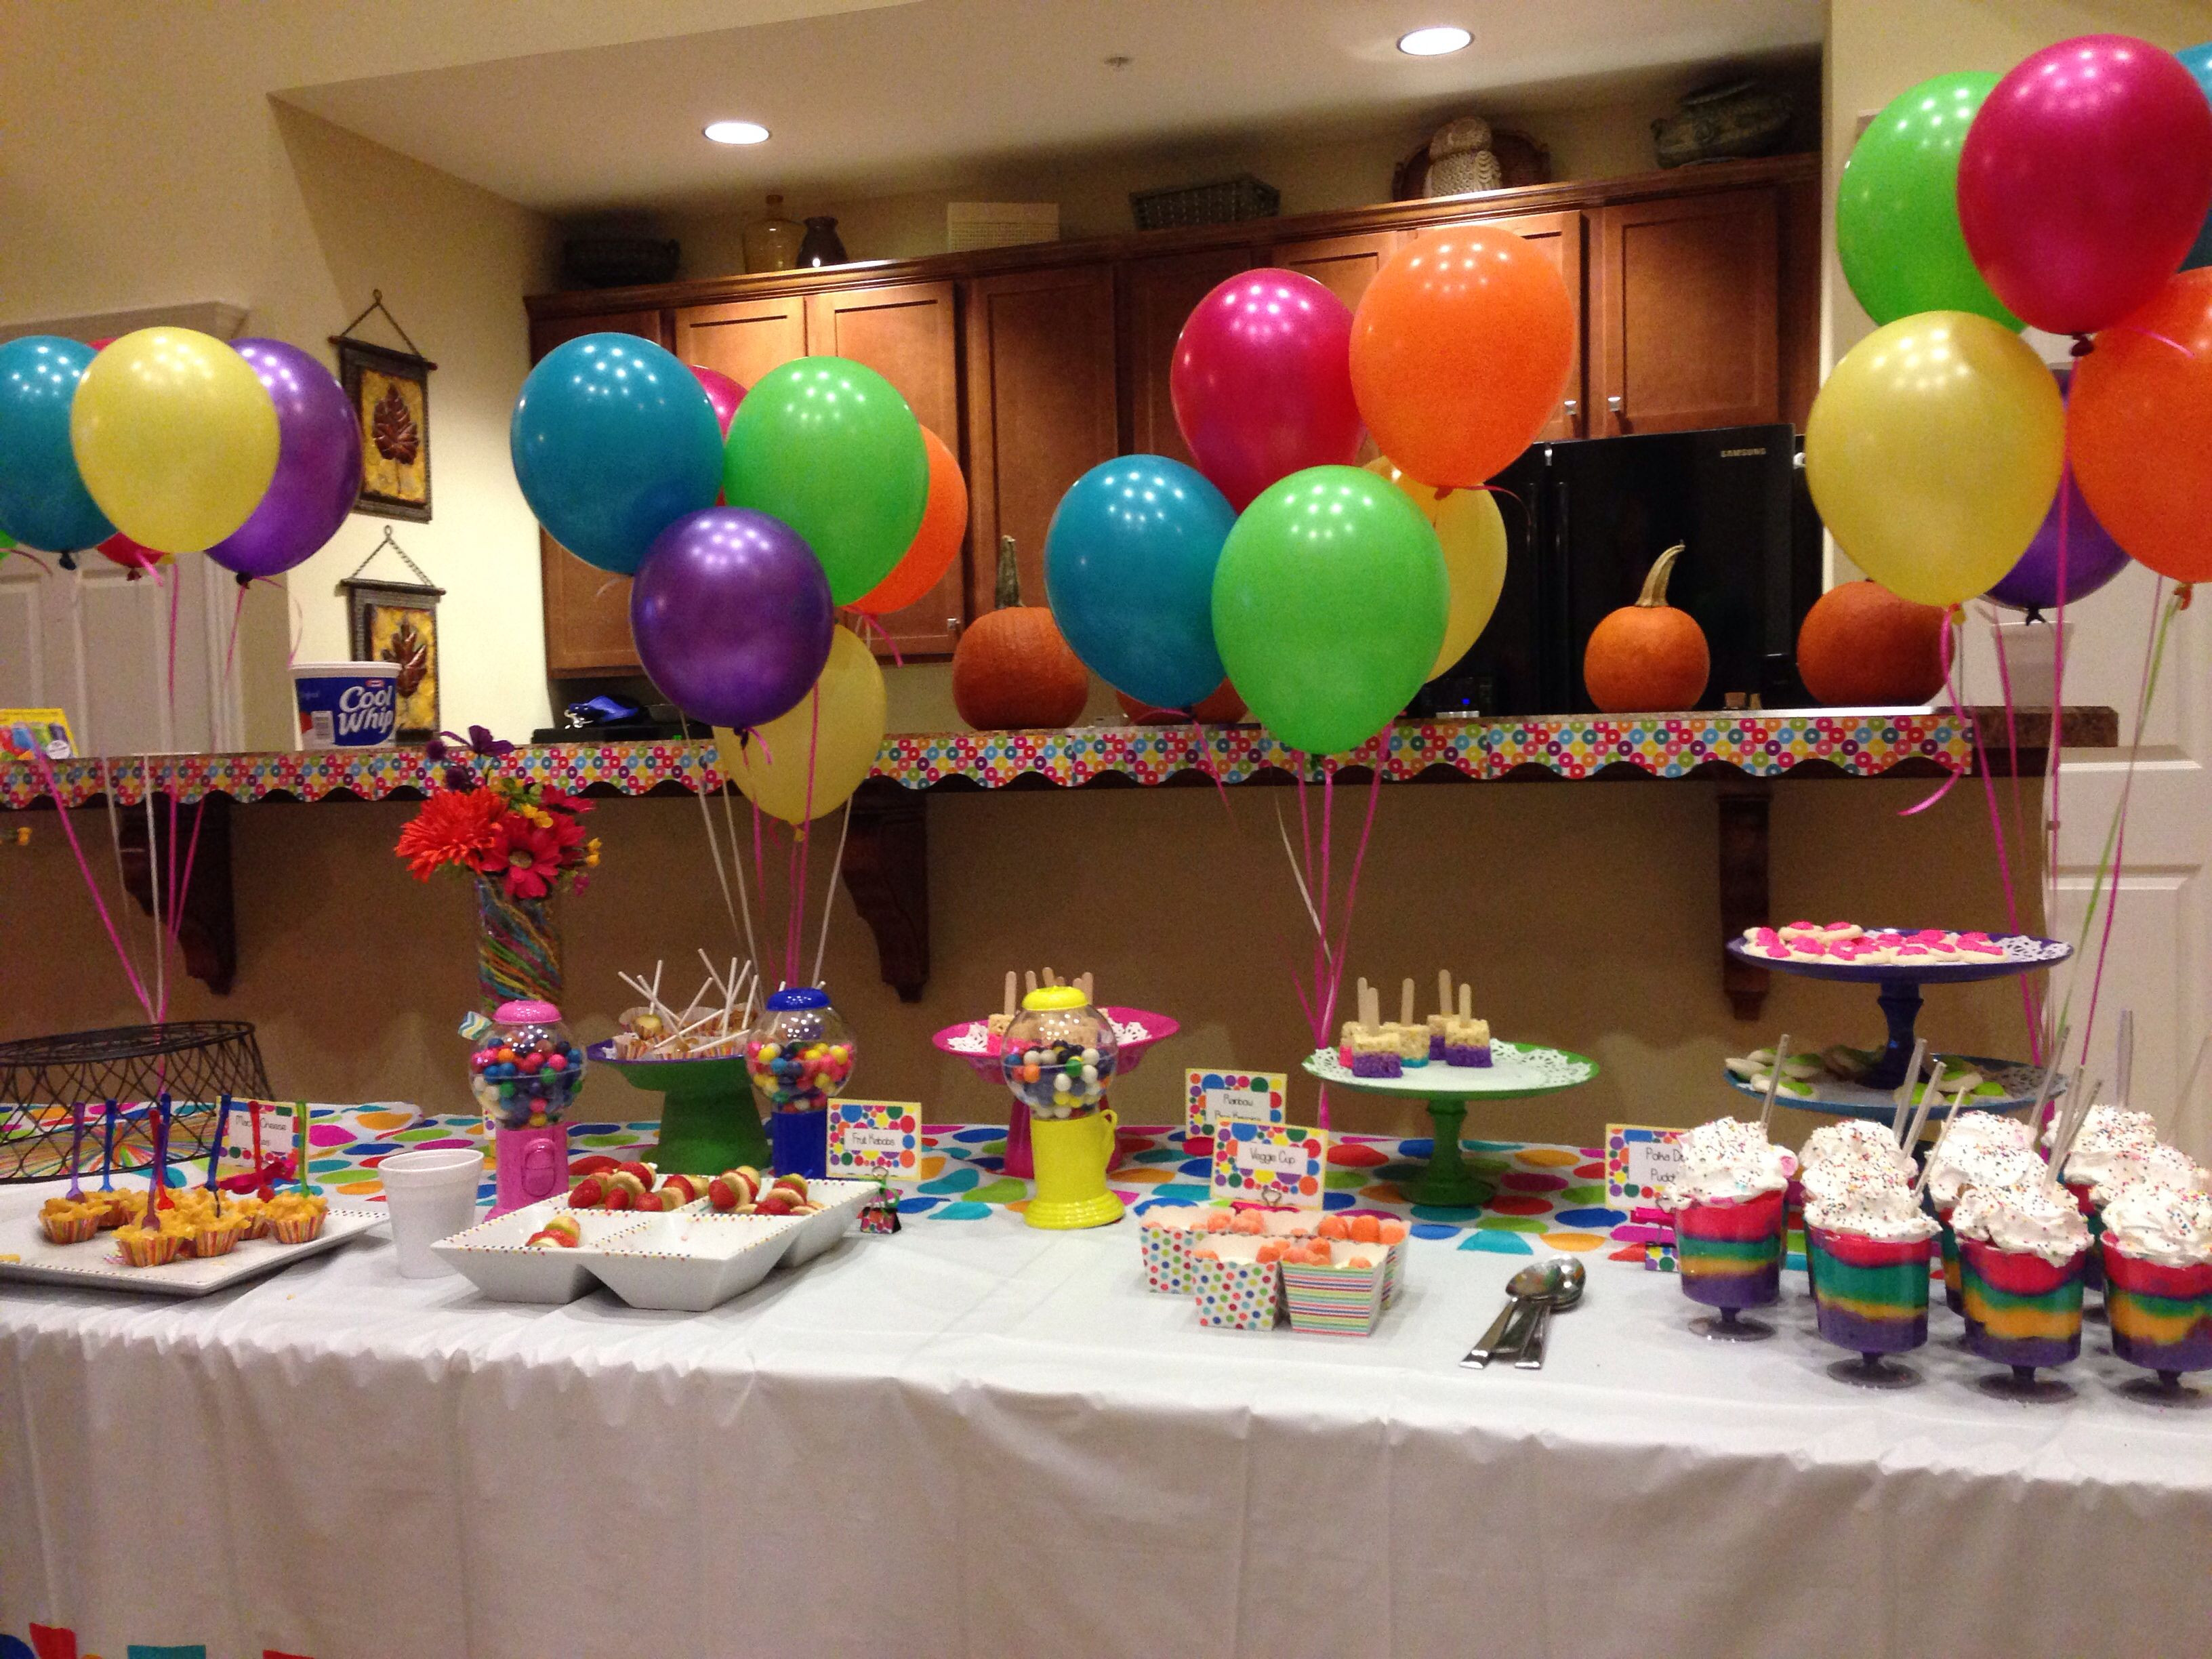 Best ideas about 4 Year Old Birthday Party Ideas . Save or Pin 4 Year Old Birthday Party Ideas Party Ideas for Kids Now.